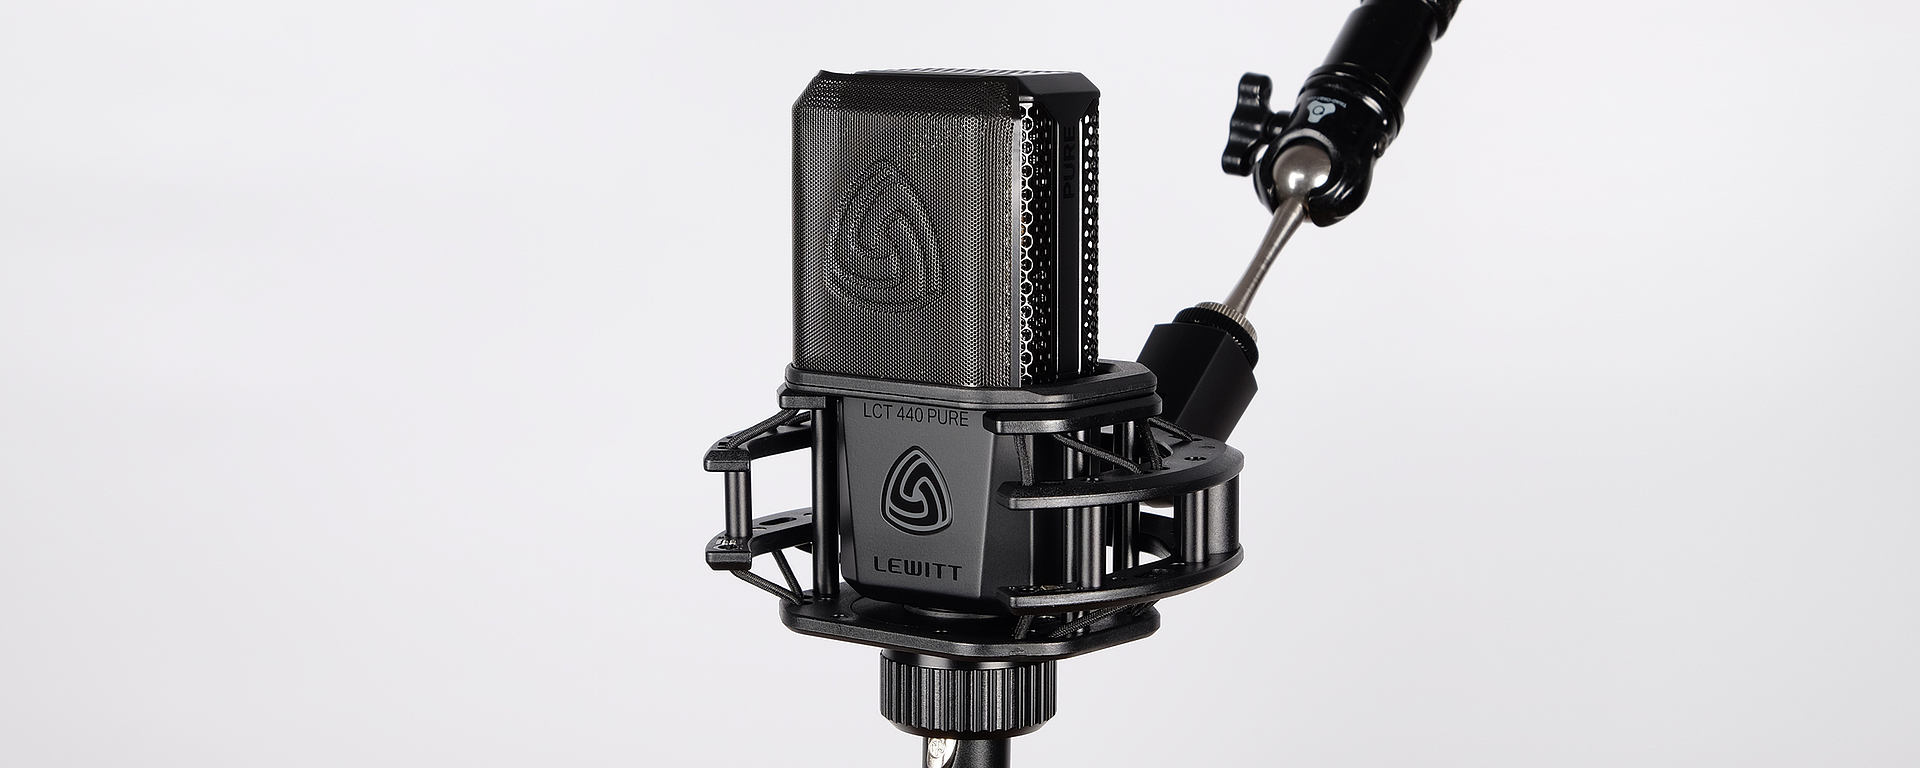 LCT 440 PURE shock mount and magnetic pop filter